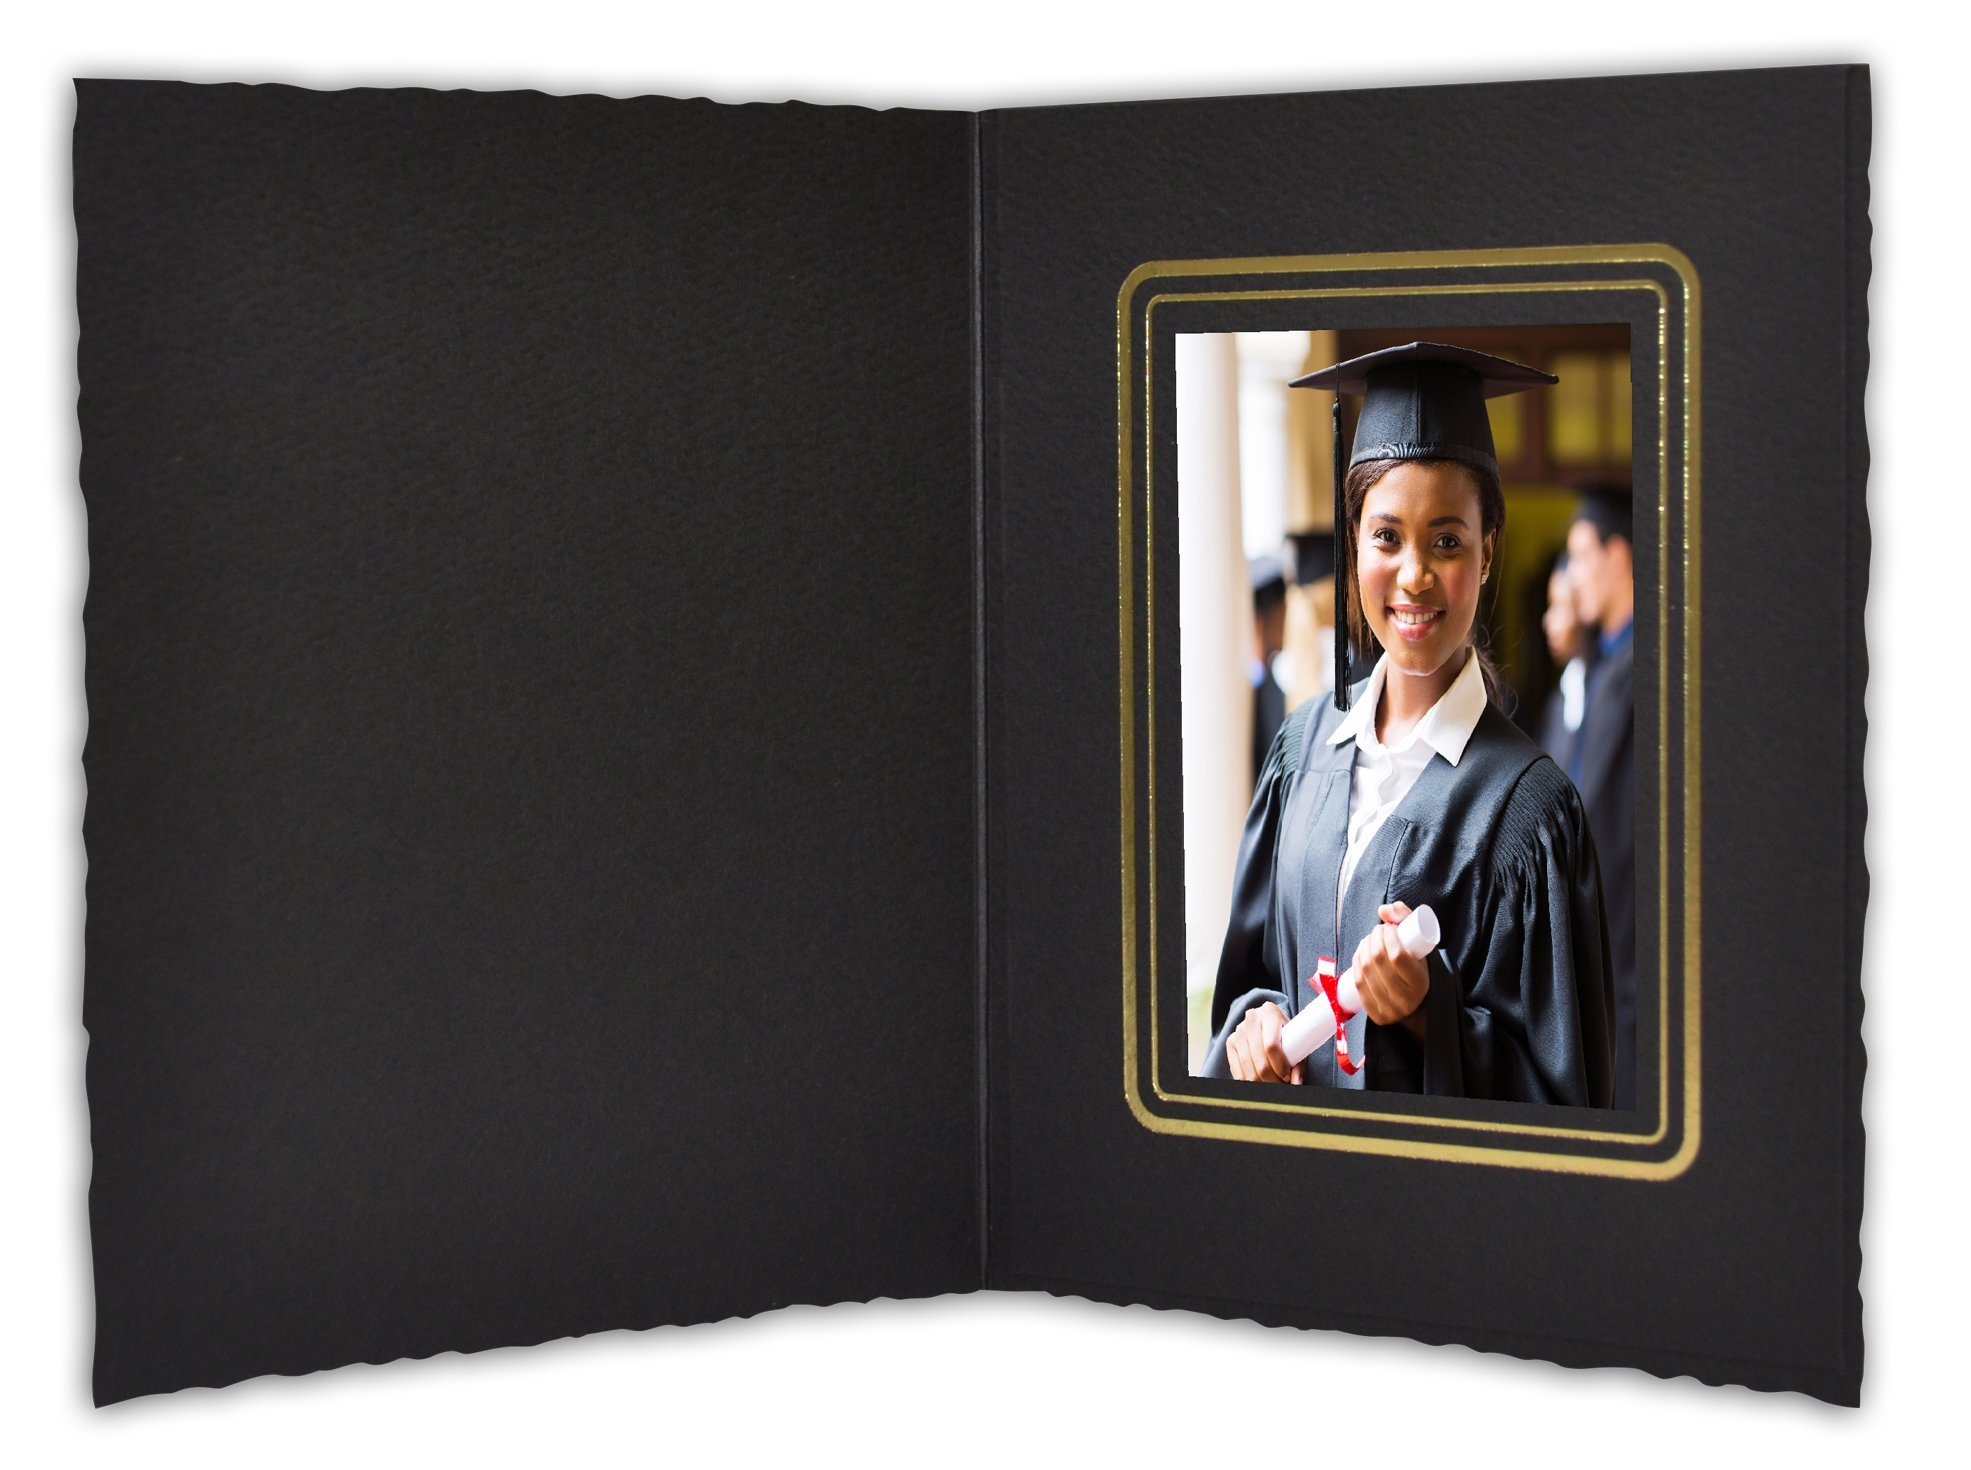 Golden State Art, Cardboard Photo Folder for a 2.5x3.5 Photo (Pack of 100) GS008 Black Color